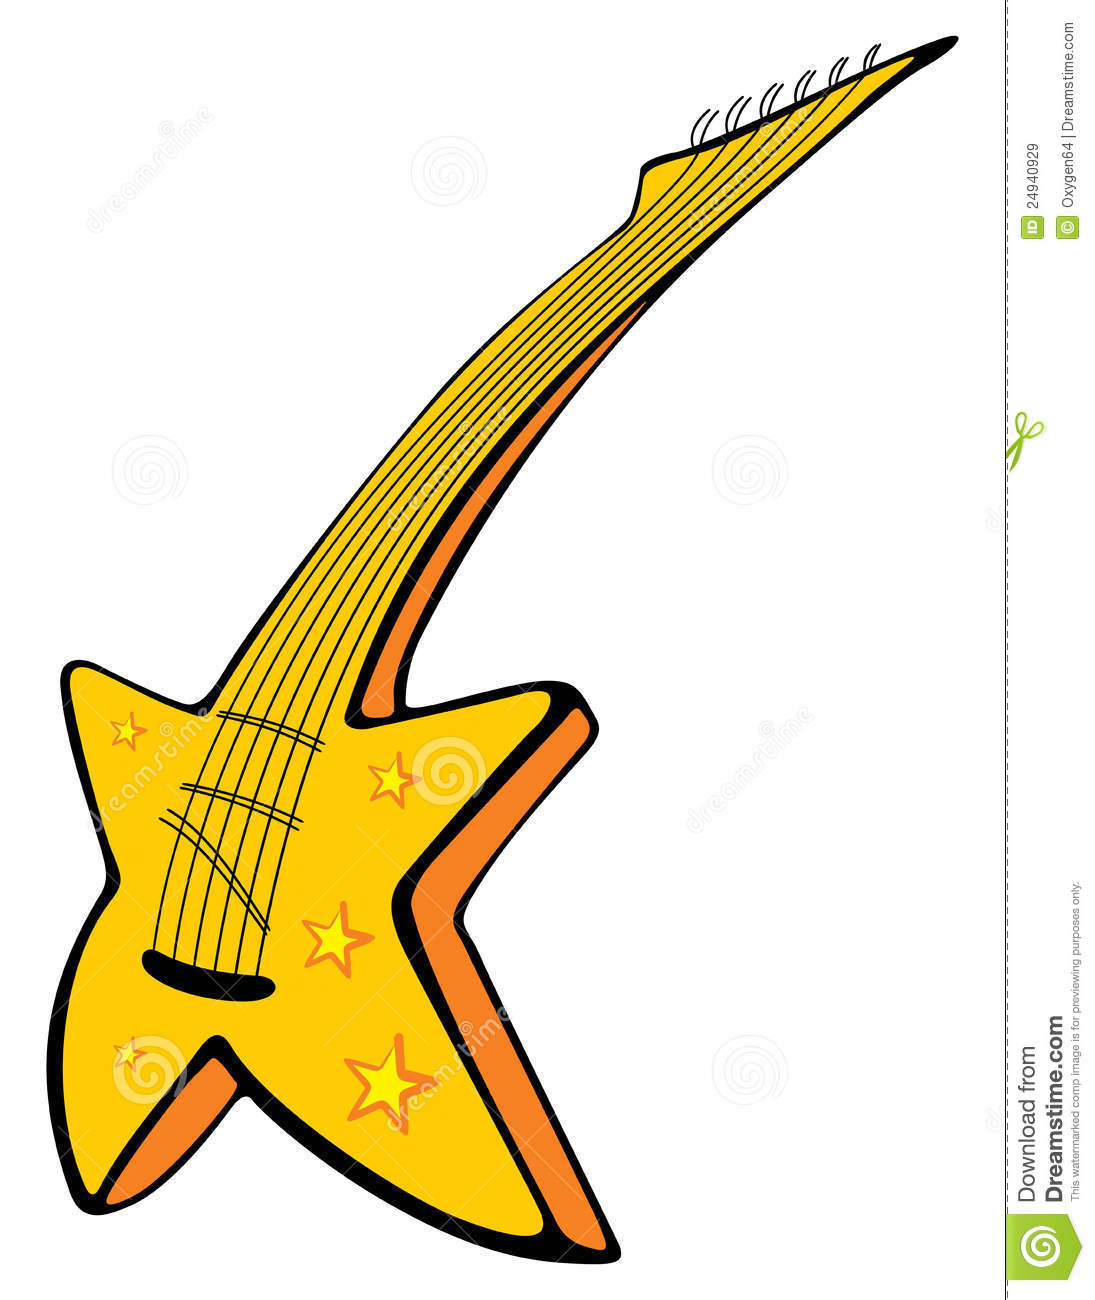 Guitar With Stars Royalty Free Stock Images - Image: 24940929